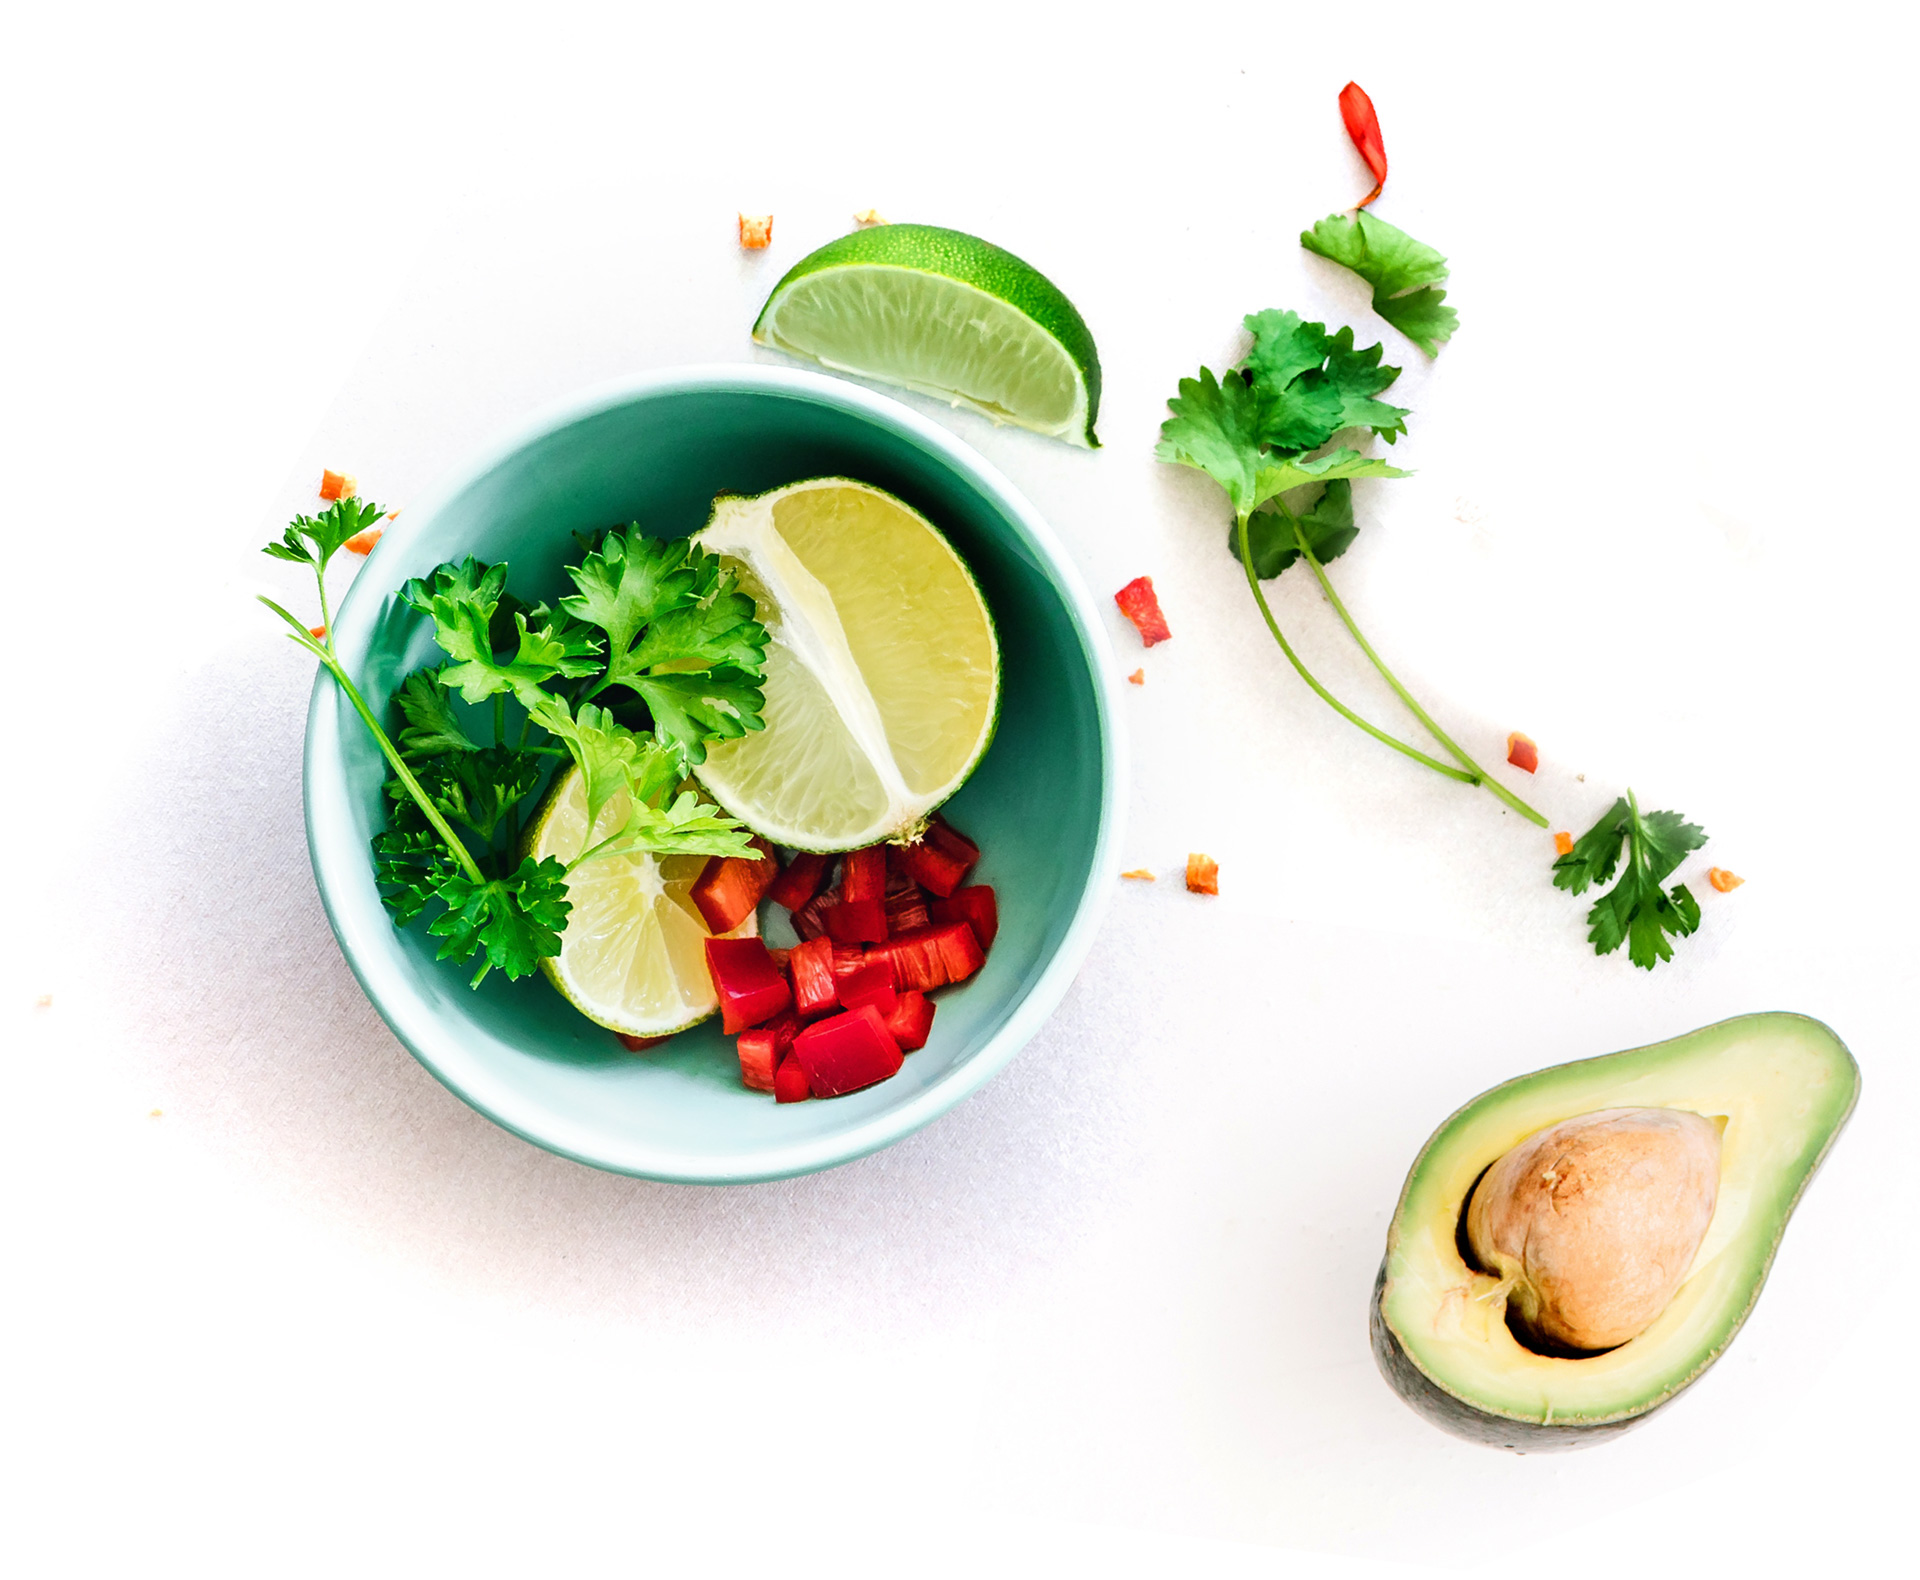 avocado greens lemon and vegetable in a bowl